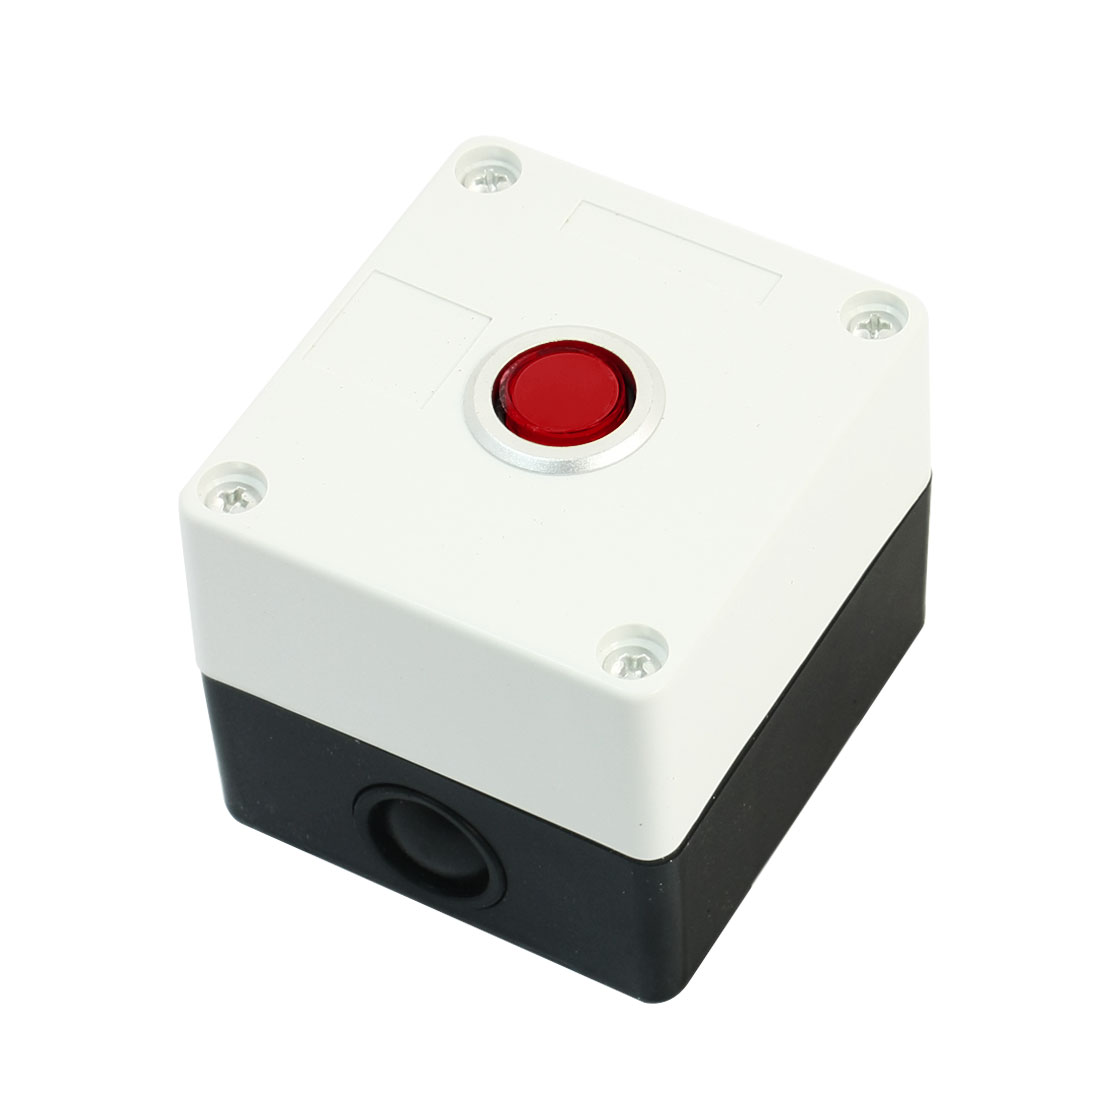 220V 15mm Dia Rectangle White Plastic Case Red Signal Indicator Light Pilot Lamp Bulb Control Station Box